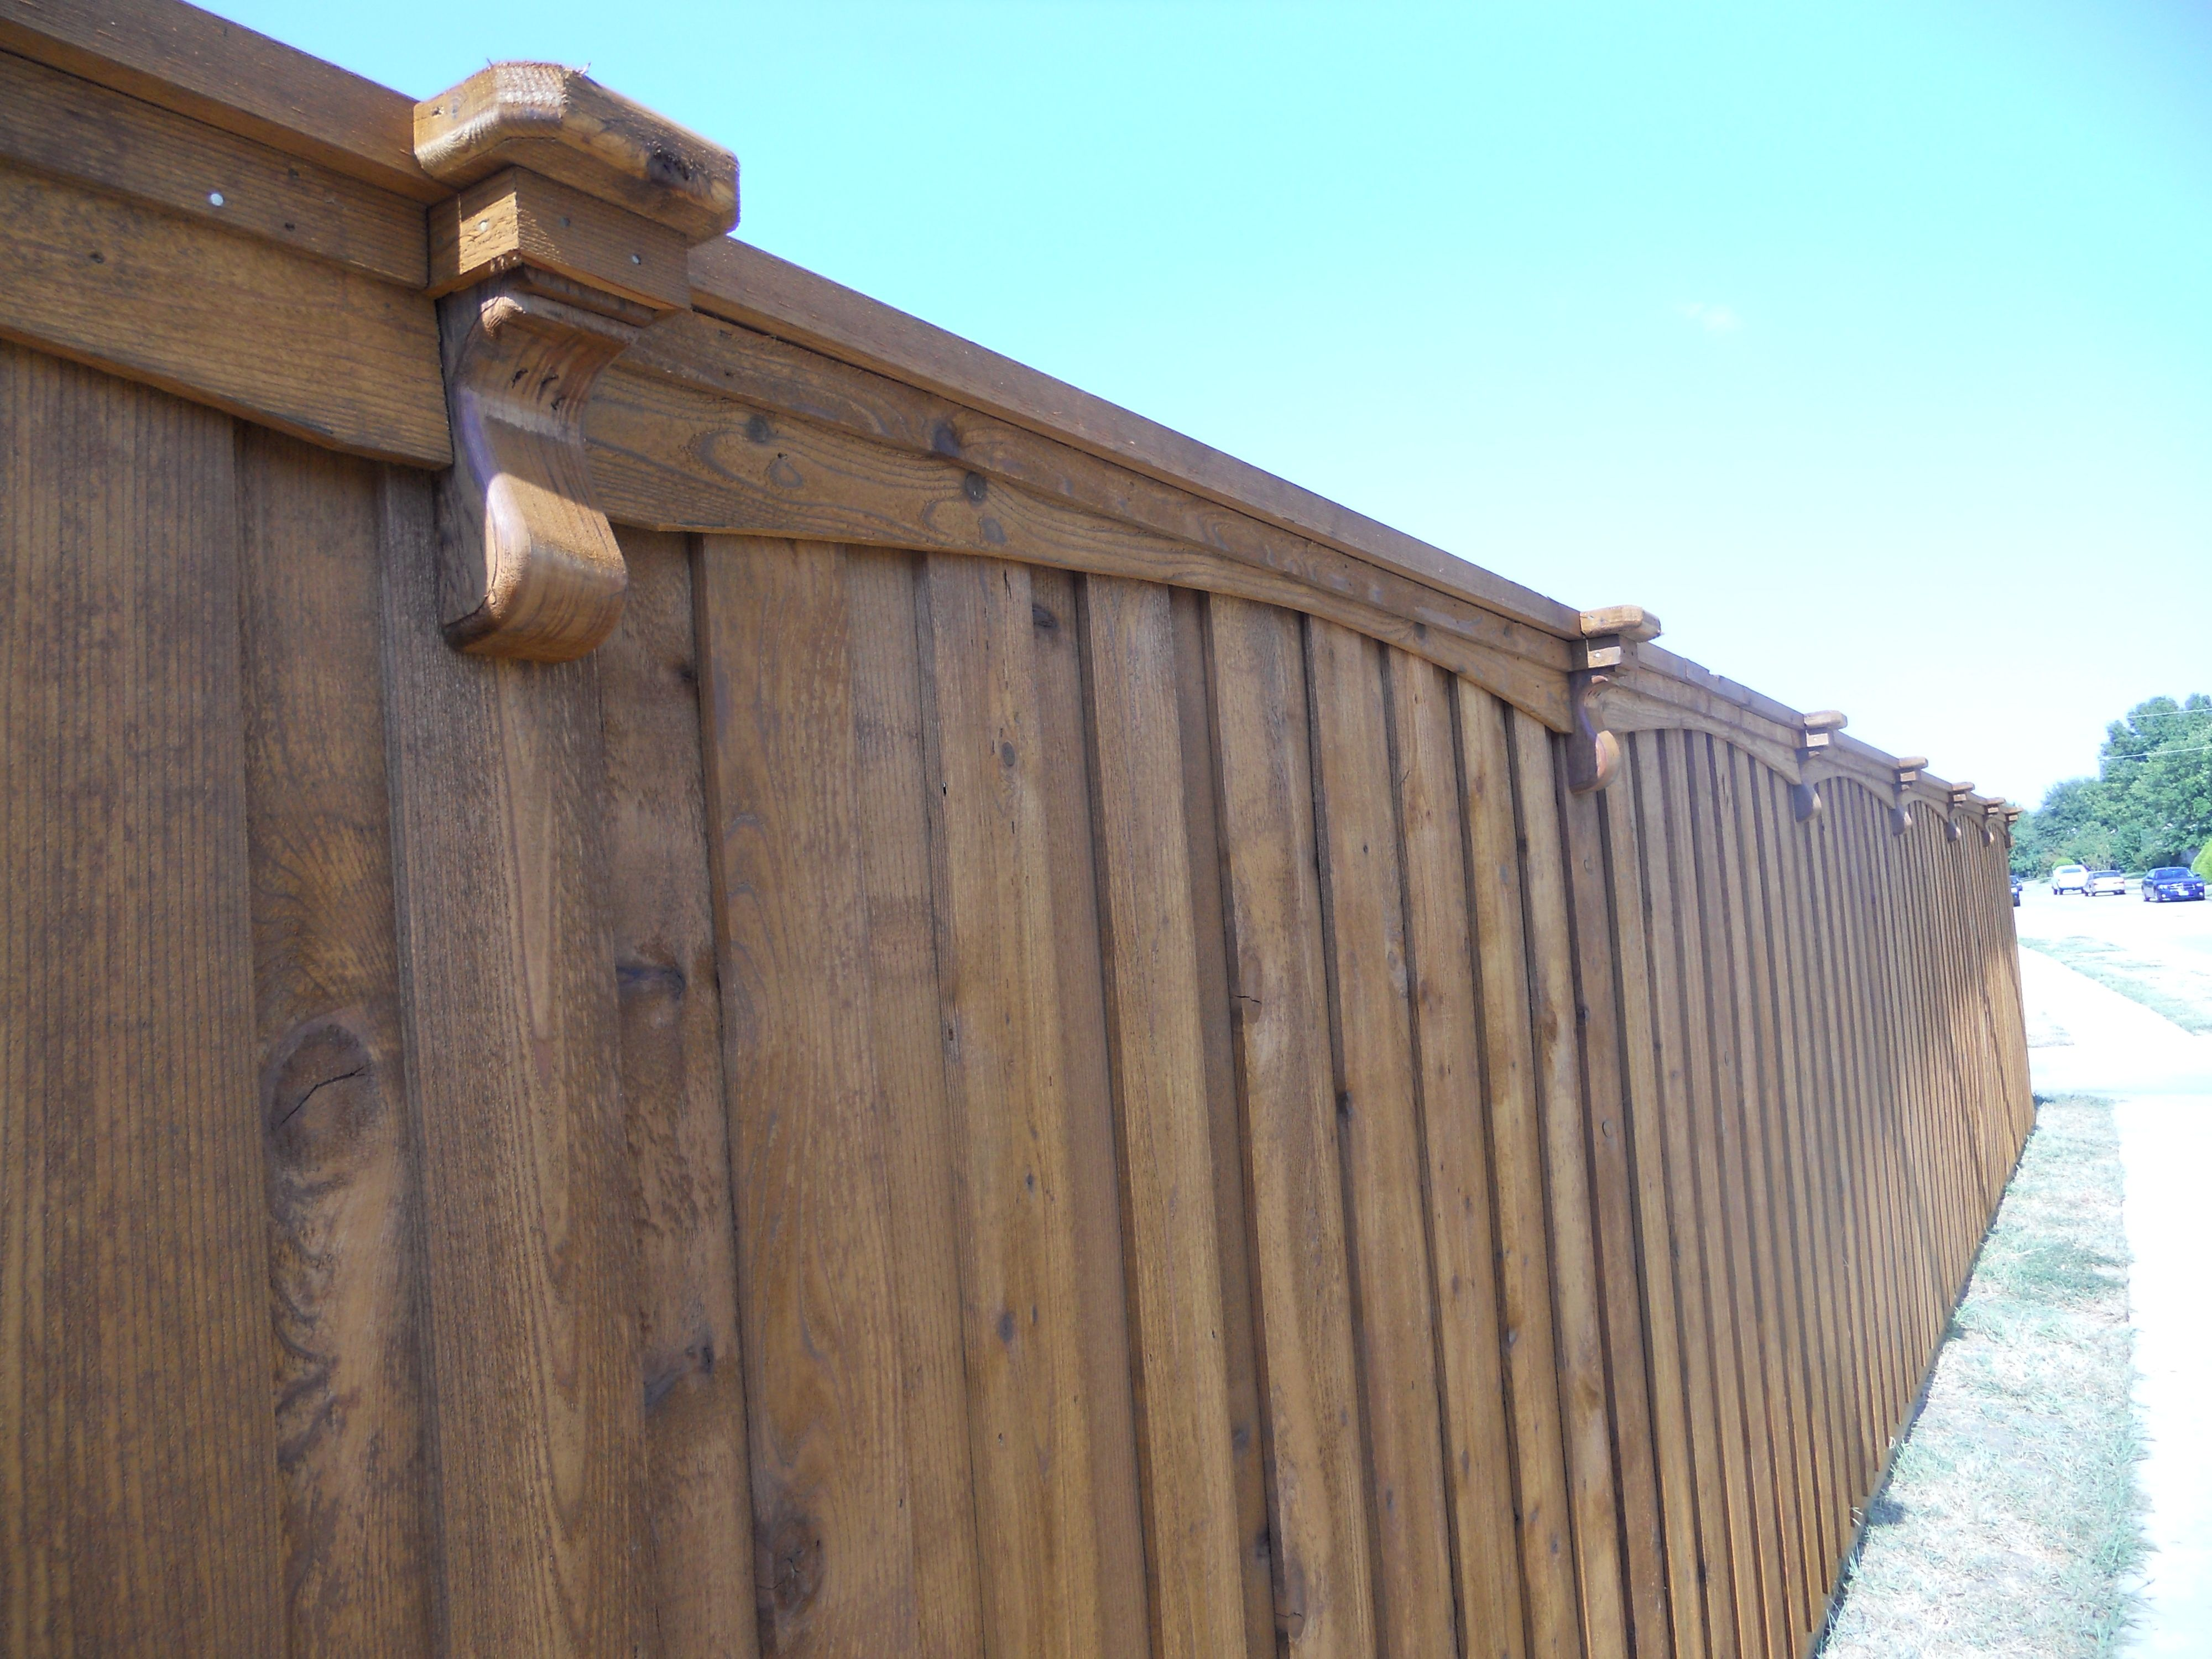 Wooden picket fence transparent backgroundgarden and gardening - Gardens Corbels And Arched Trim On Cedar Fence